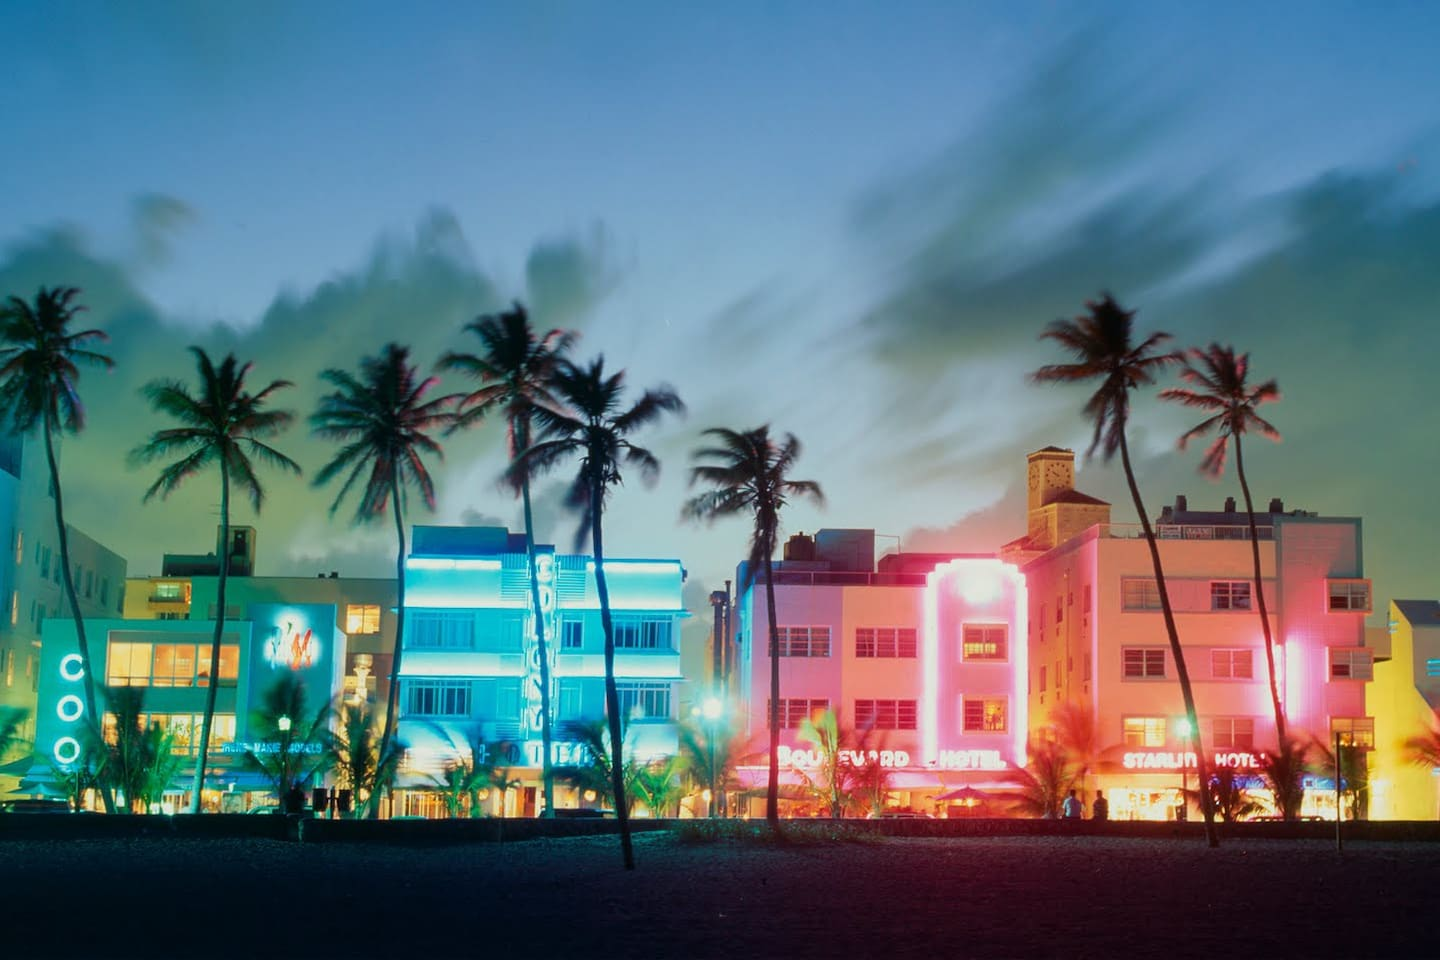 On the beach in the heart of Art Deco district right on Ocean Drive as shown on picture